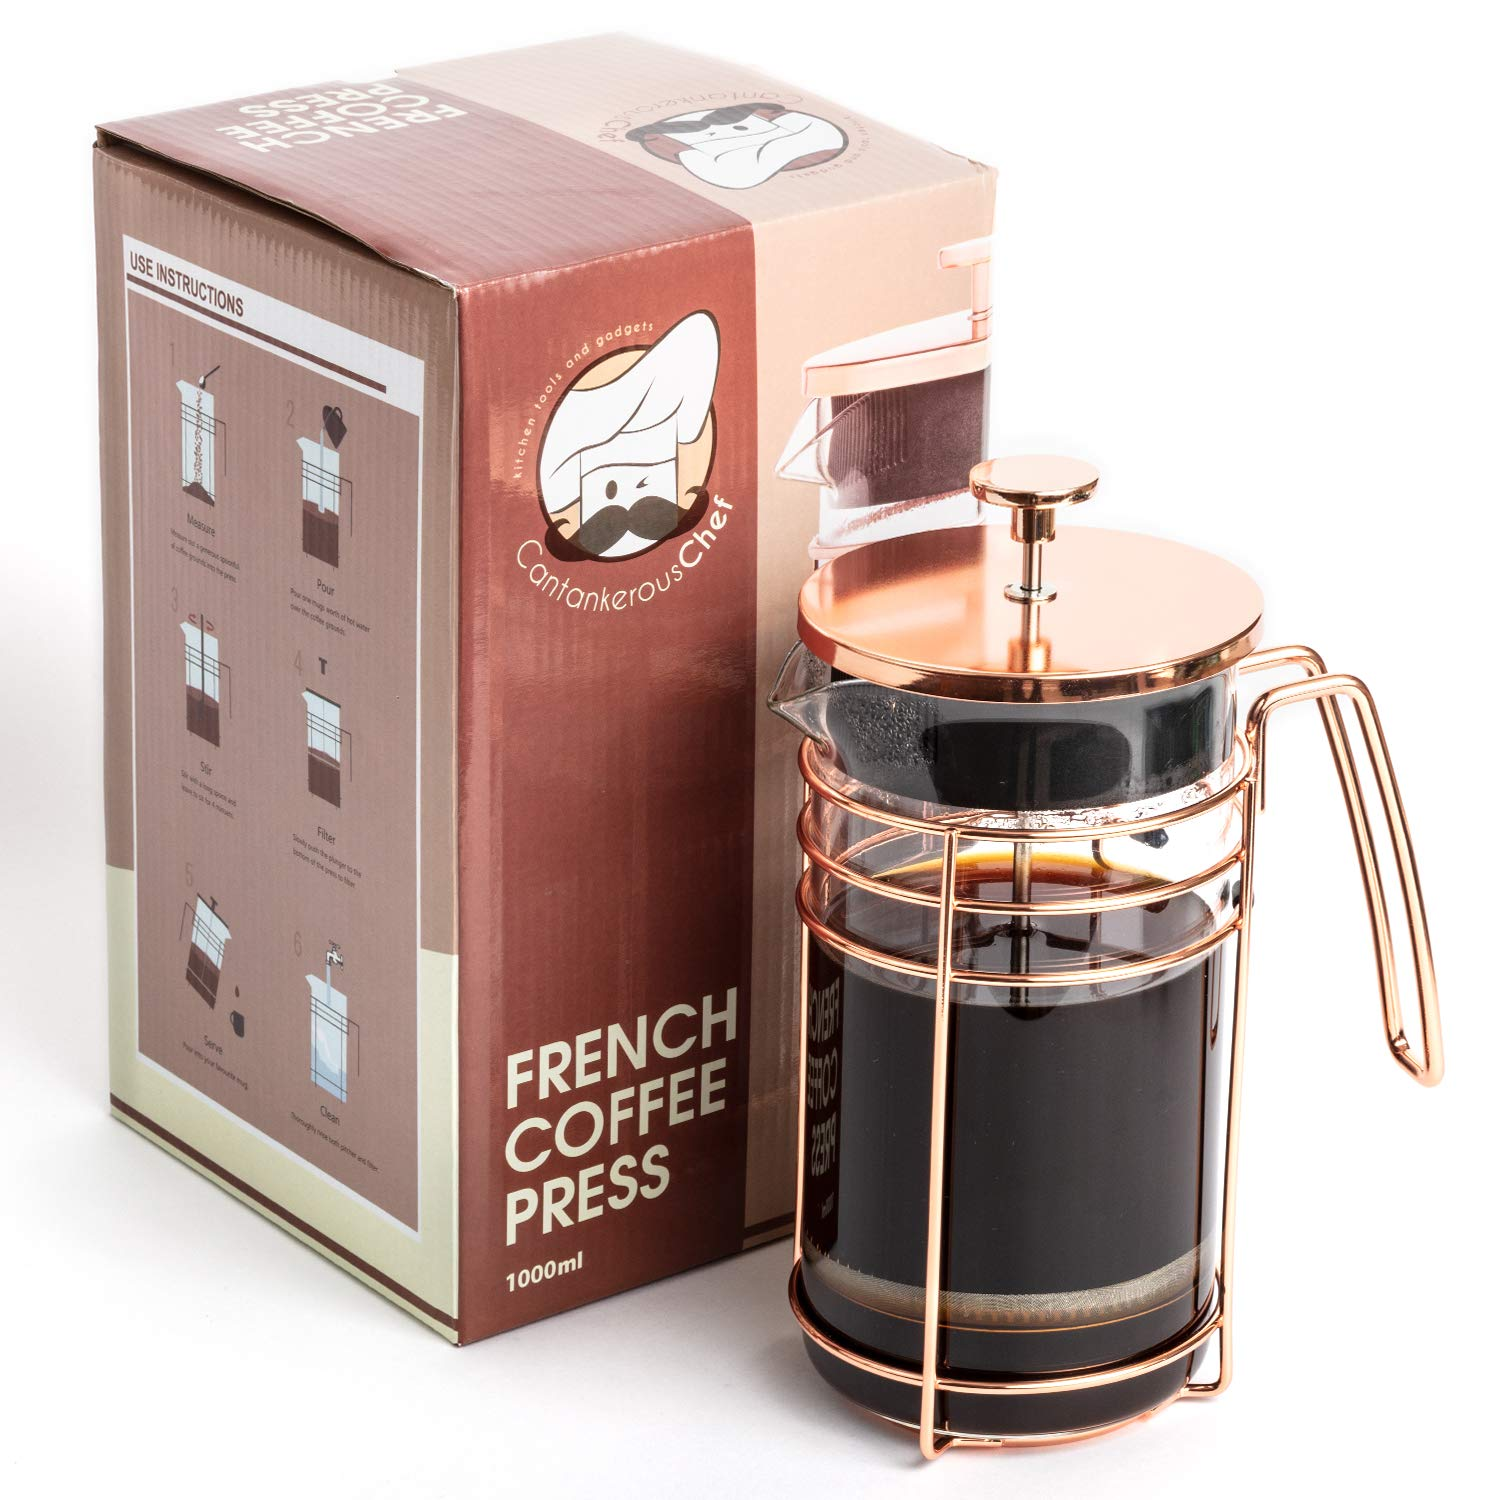 Cantankerous Chef Rose Gold French Press - Large 8 Cup Coffee Press - Best Coffee Maker - Elegant Original Finishing - Sturdy Small Mesh Filter Borosilicate Glass With 3-part Stainless Steel Plunger by Cantankerous Chef